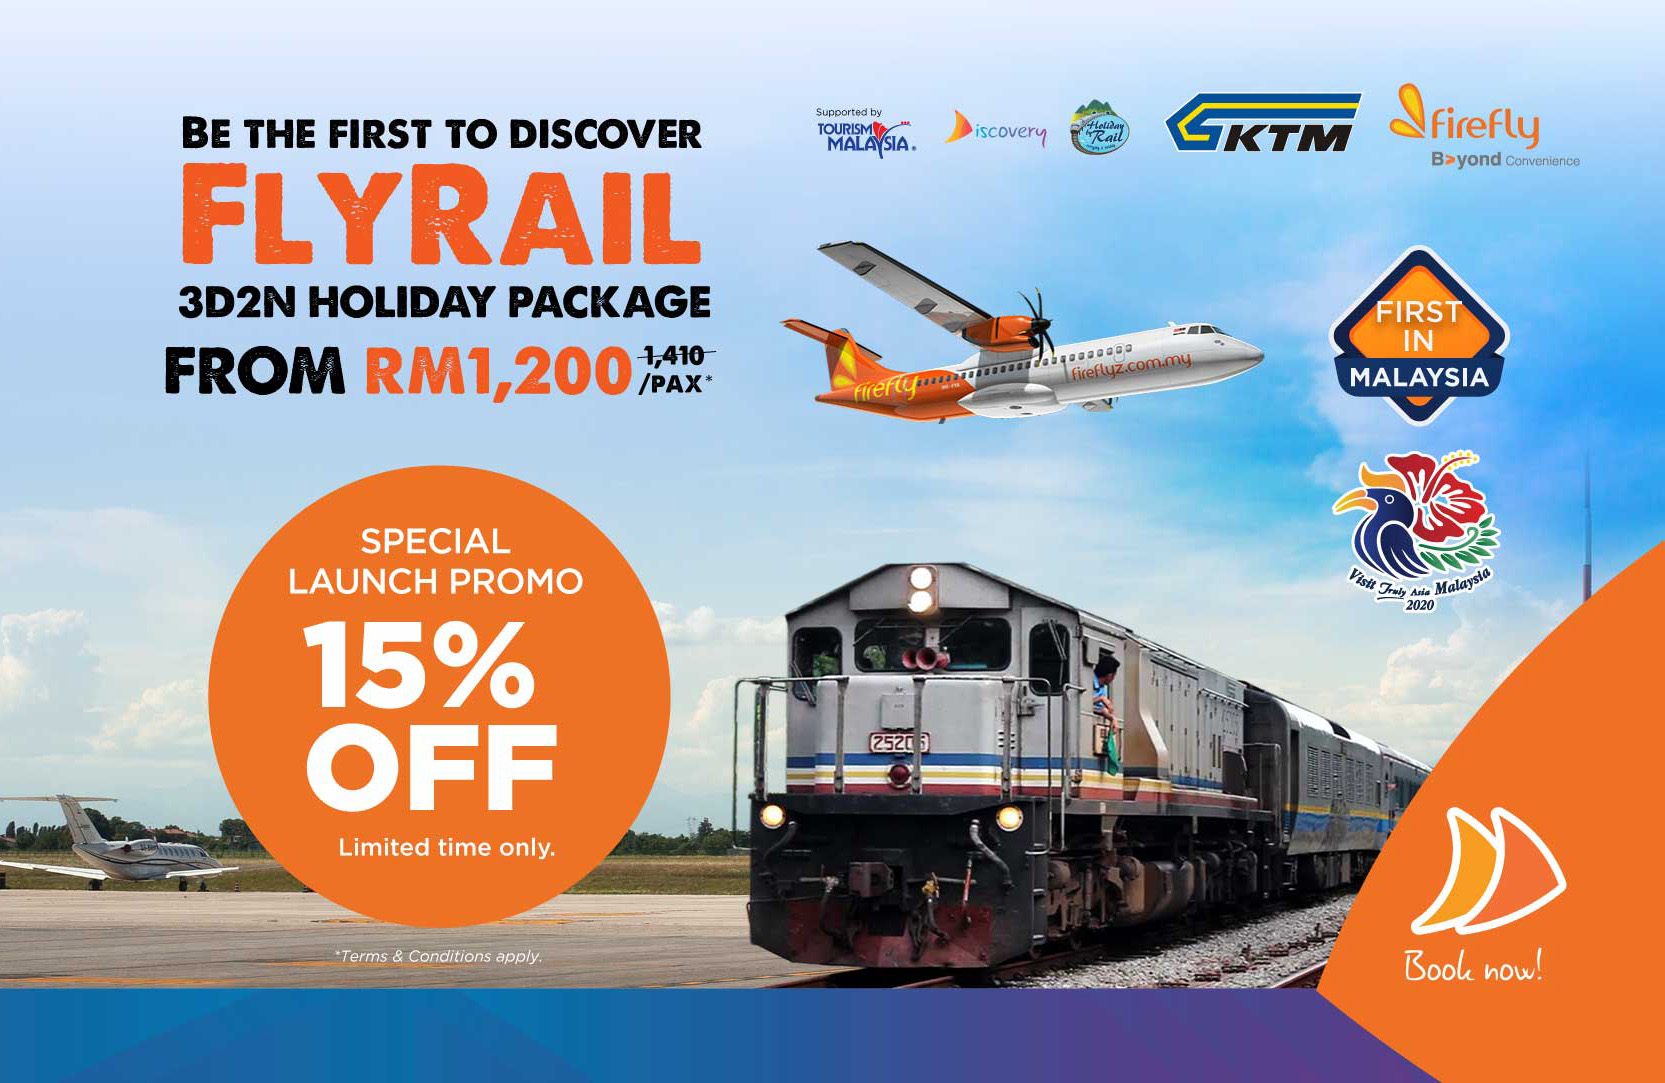 PHL – Experience new Firefly / KTMB travel promotion